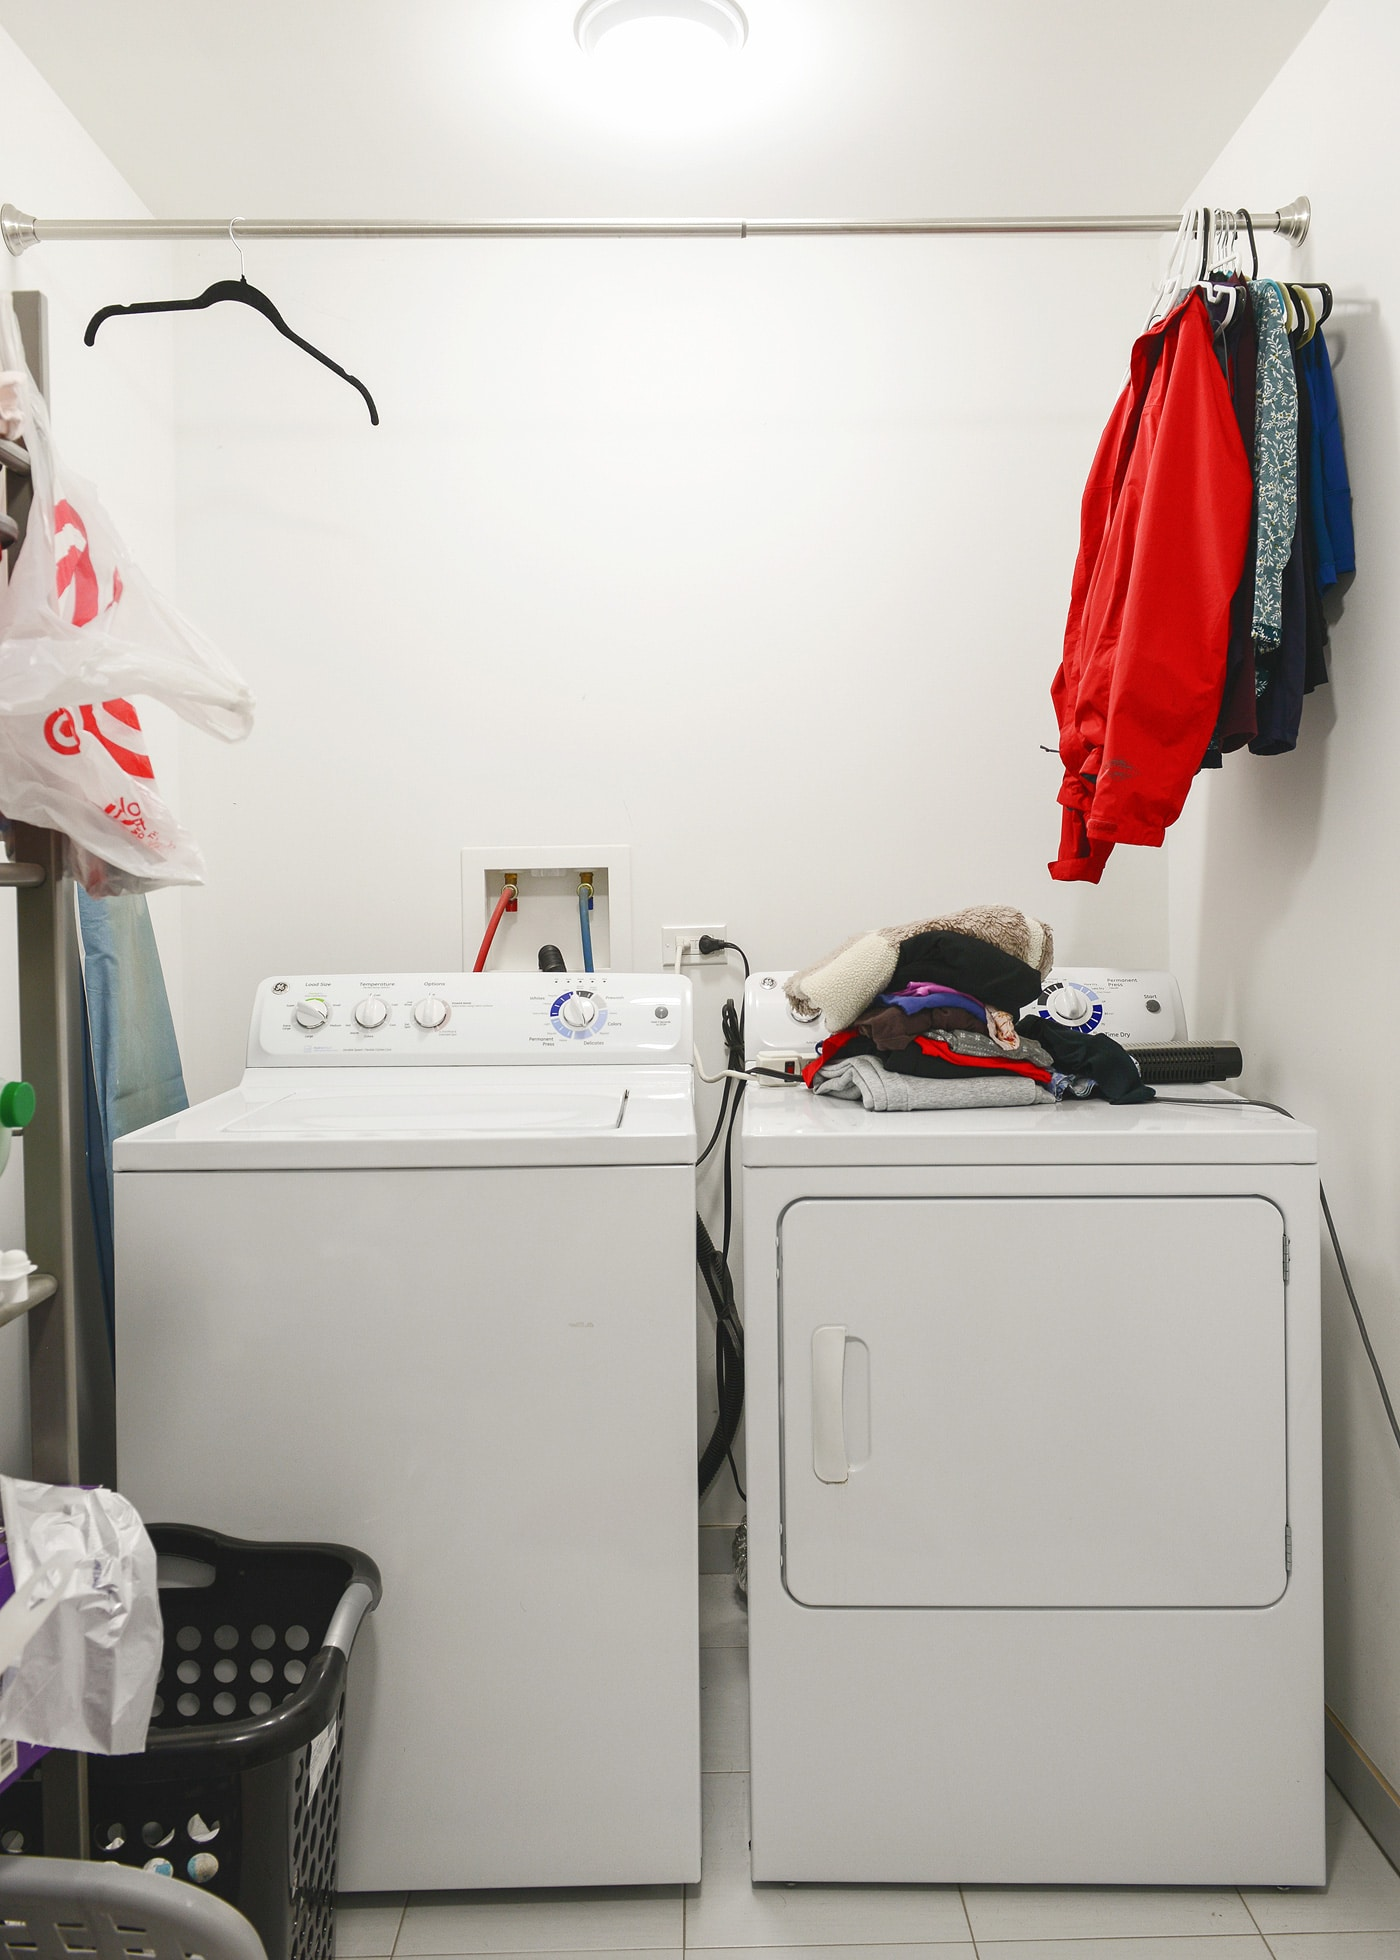 A 2 day laundry room makeover! Sherwin Williams Faint Coral walls and all items are from Lowe